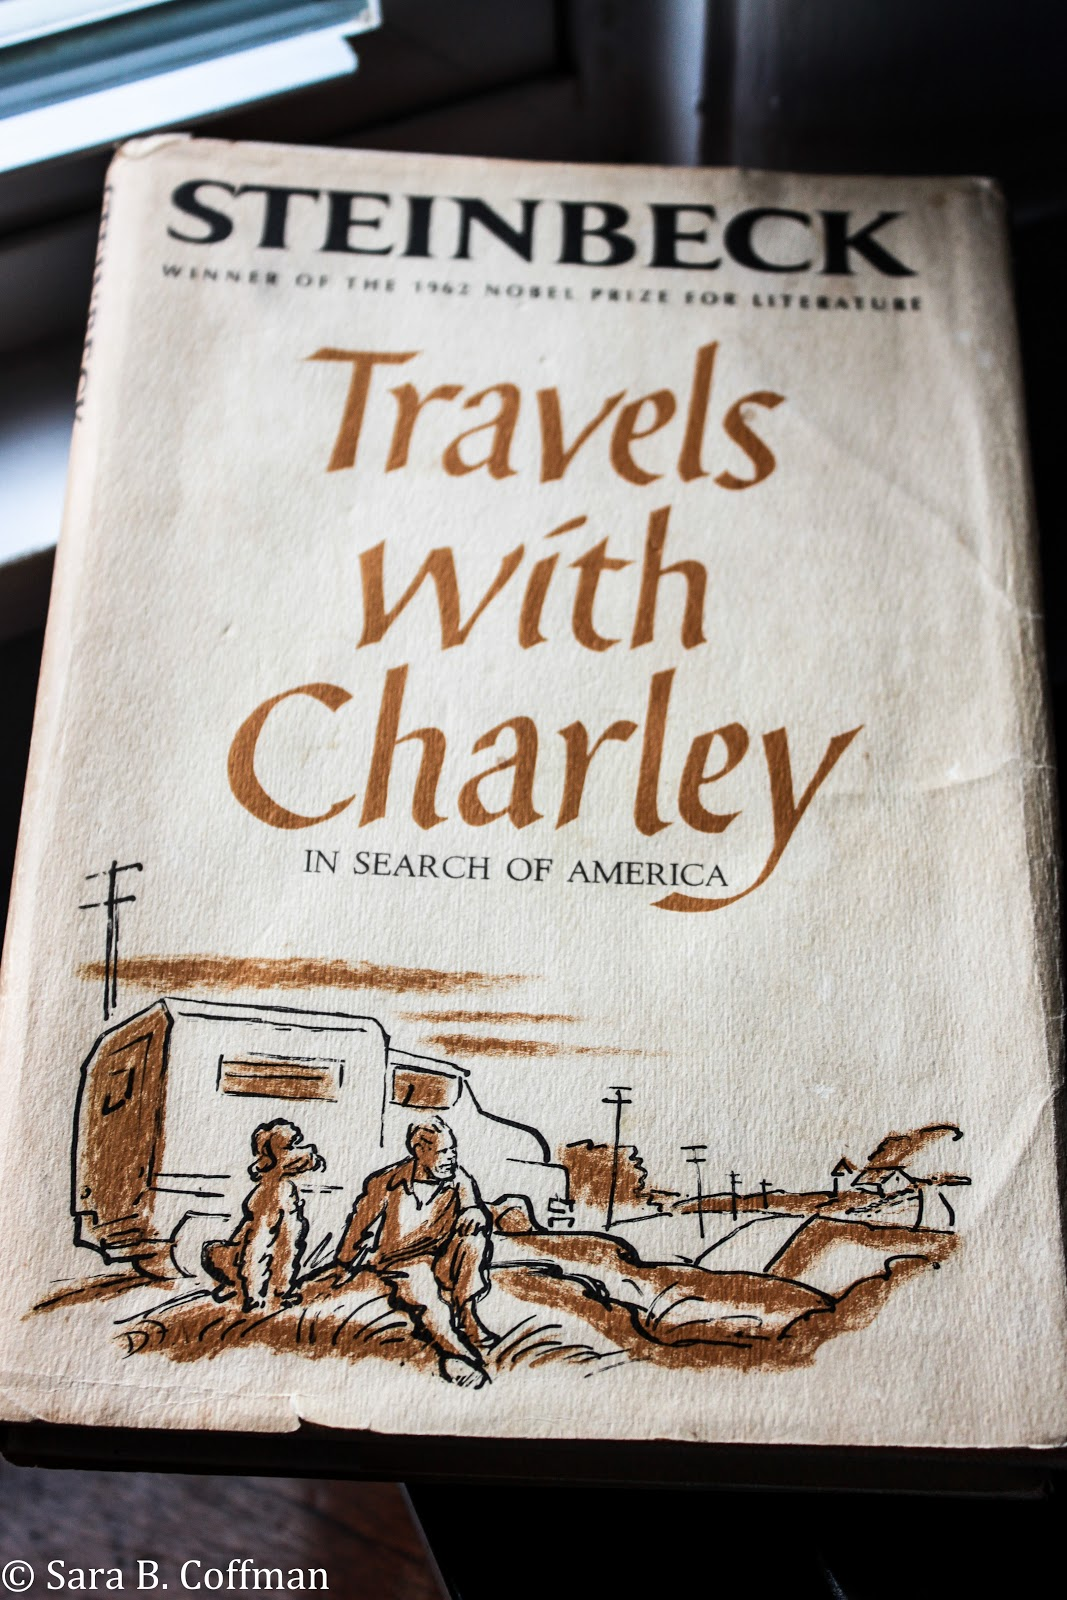 wordy evidence of the fact travels charley by john steinbeck that s right that s jacket design and illustrations by the great don man so cool